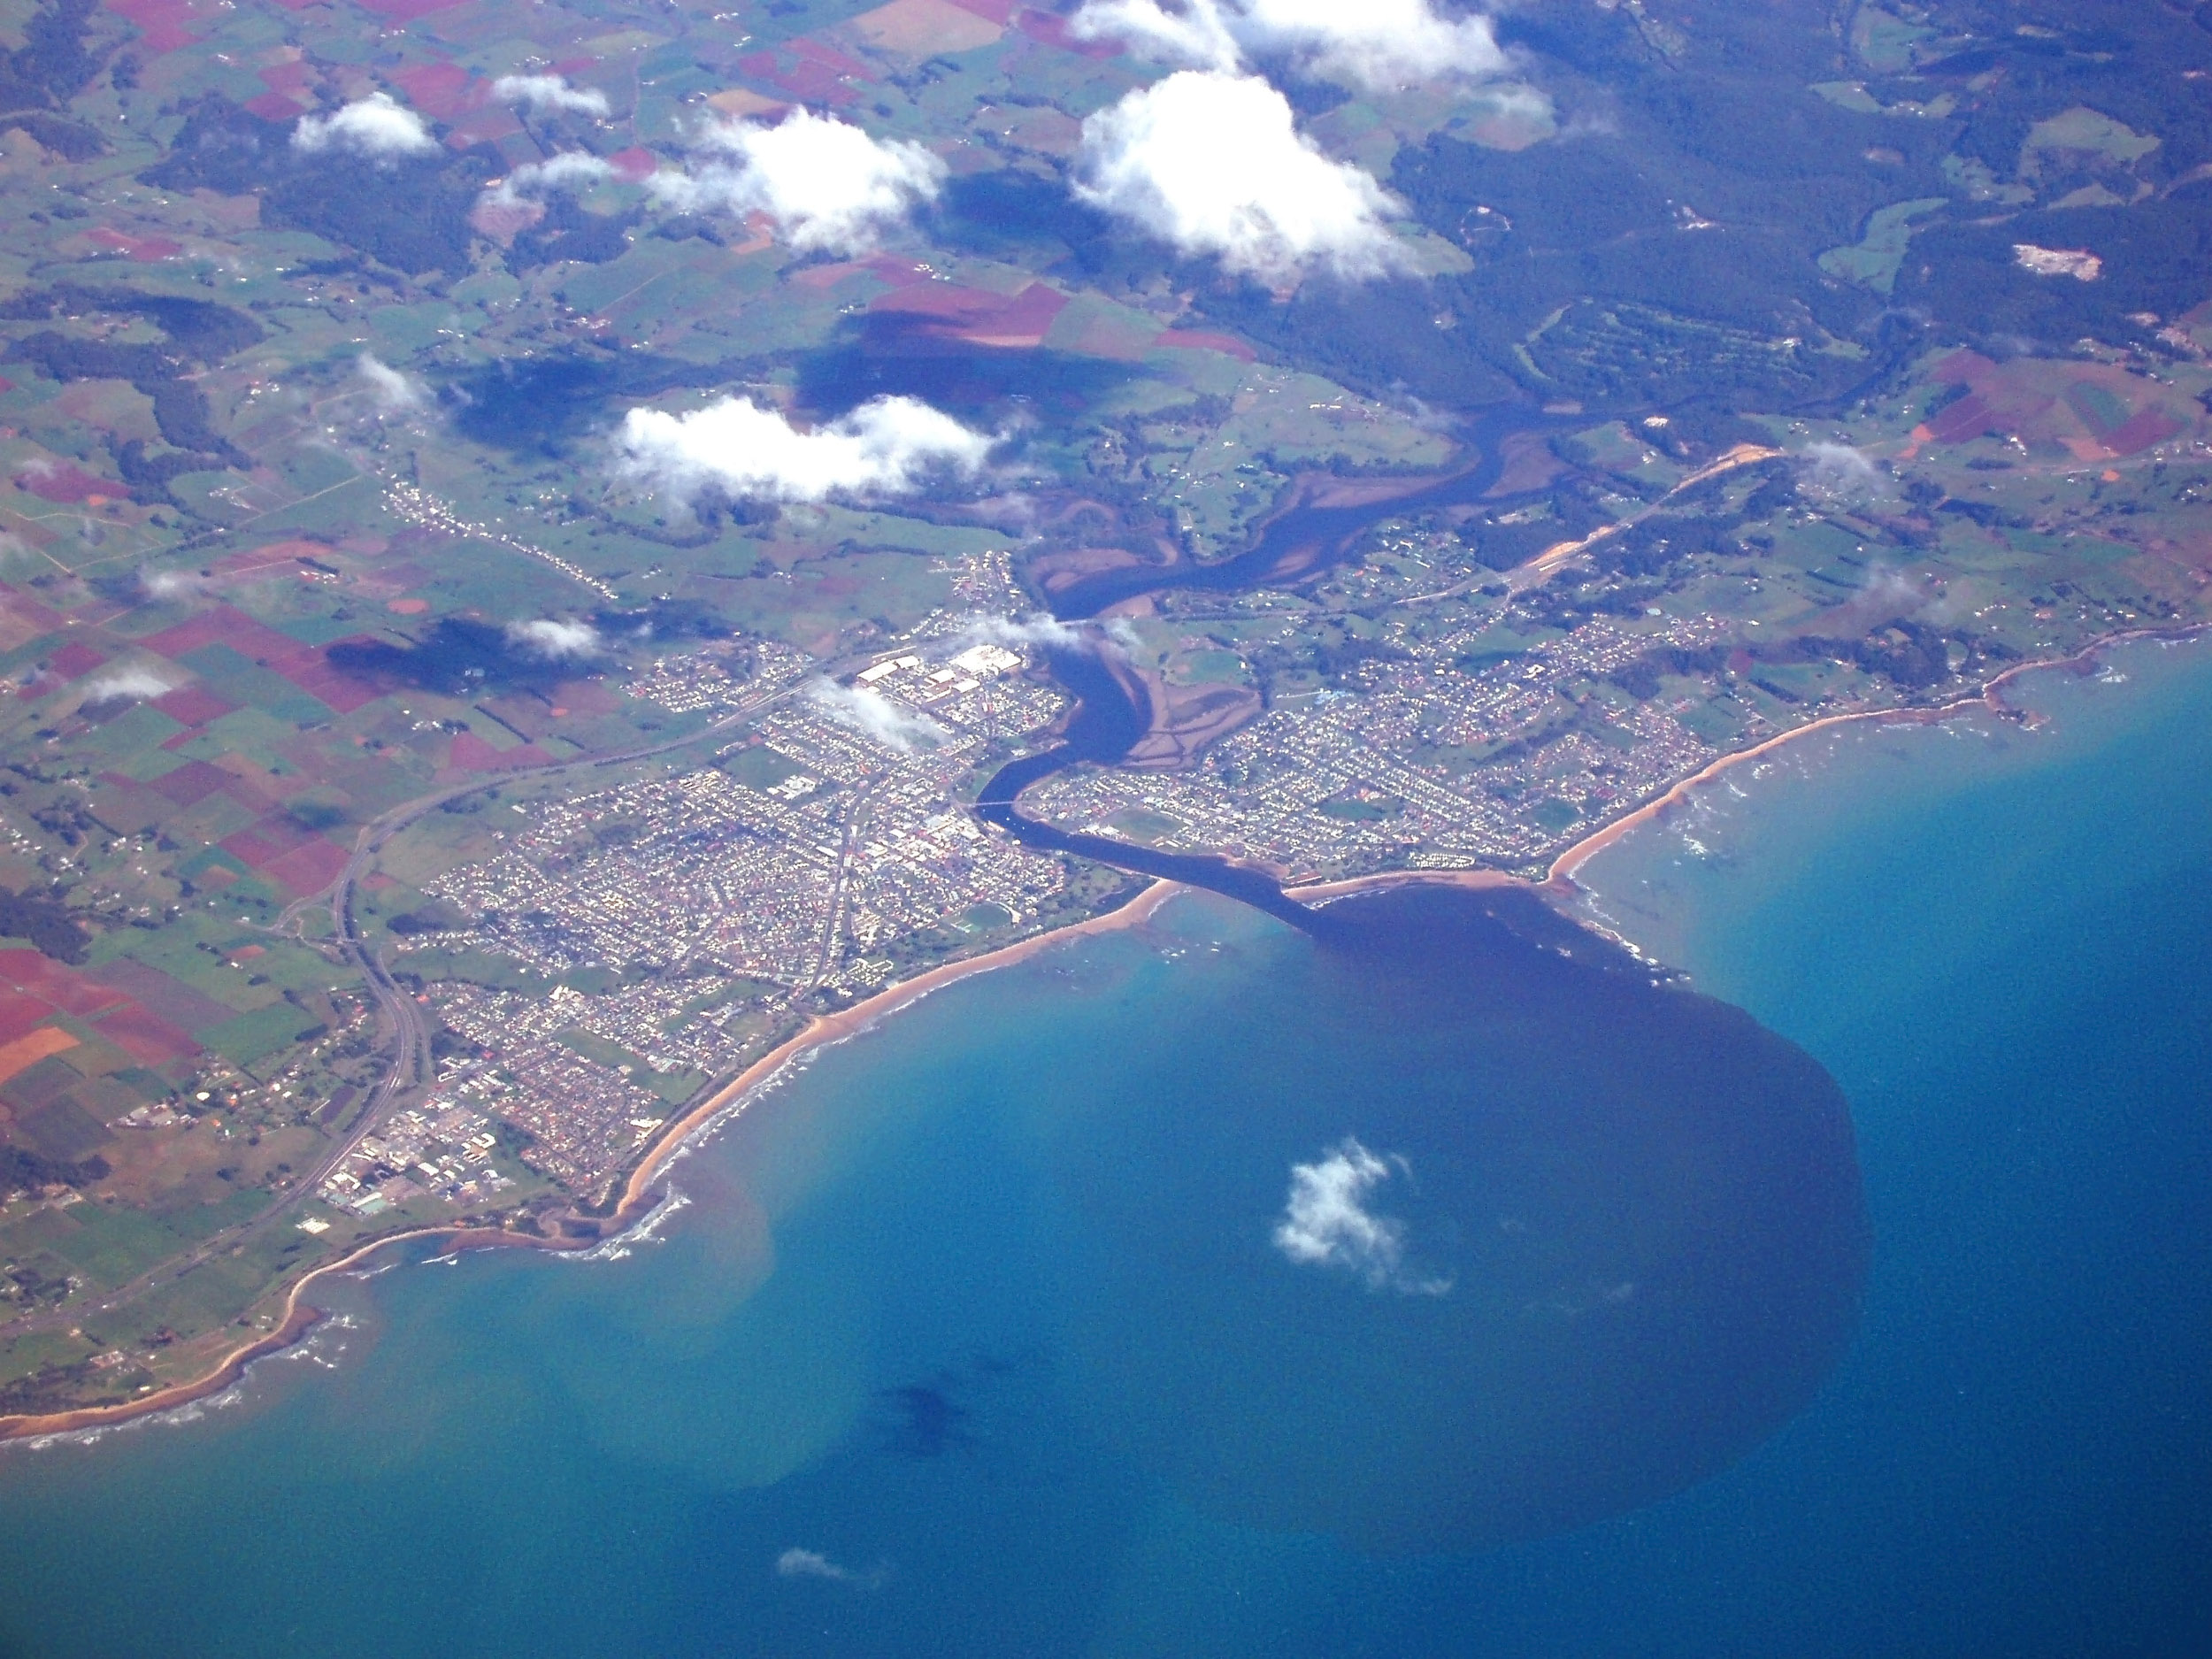 a aerial view of the mouth of the river laven and the town of ulverstone